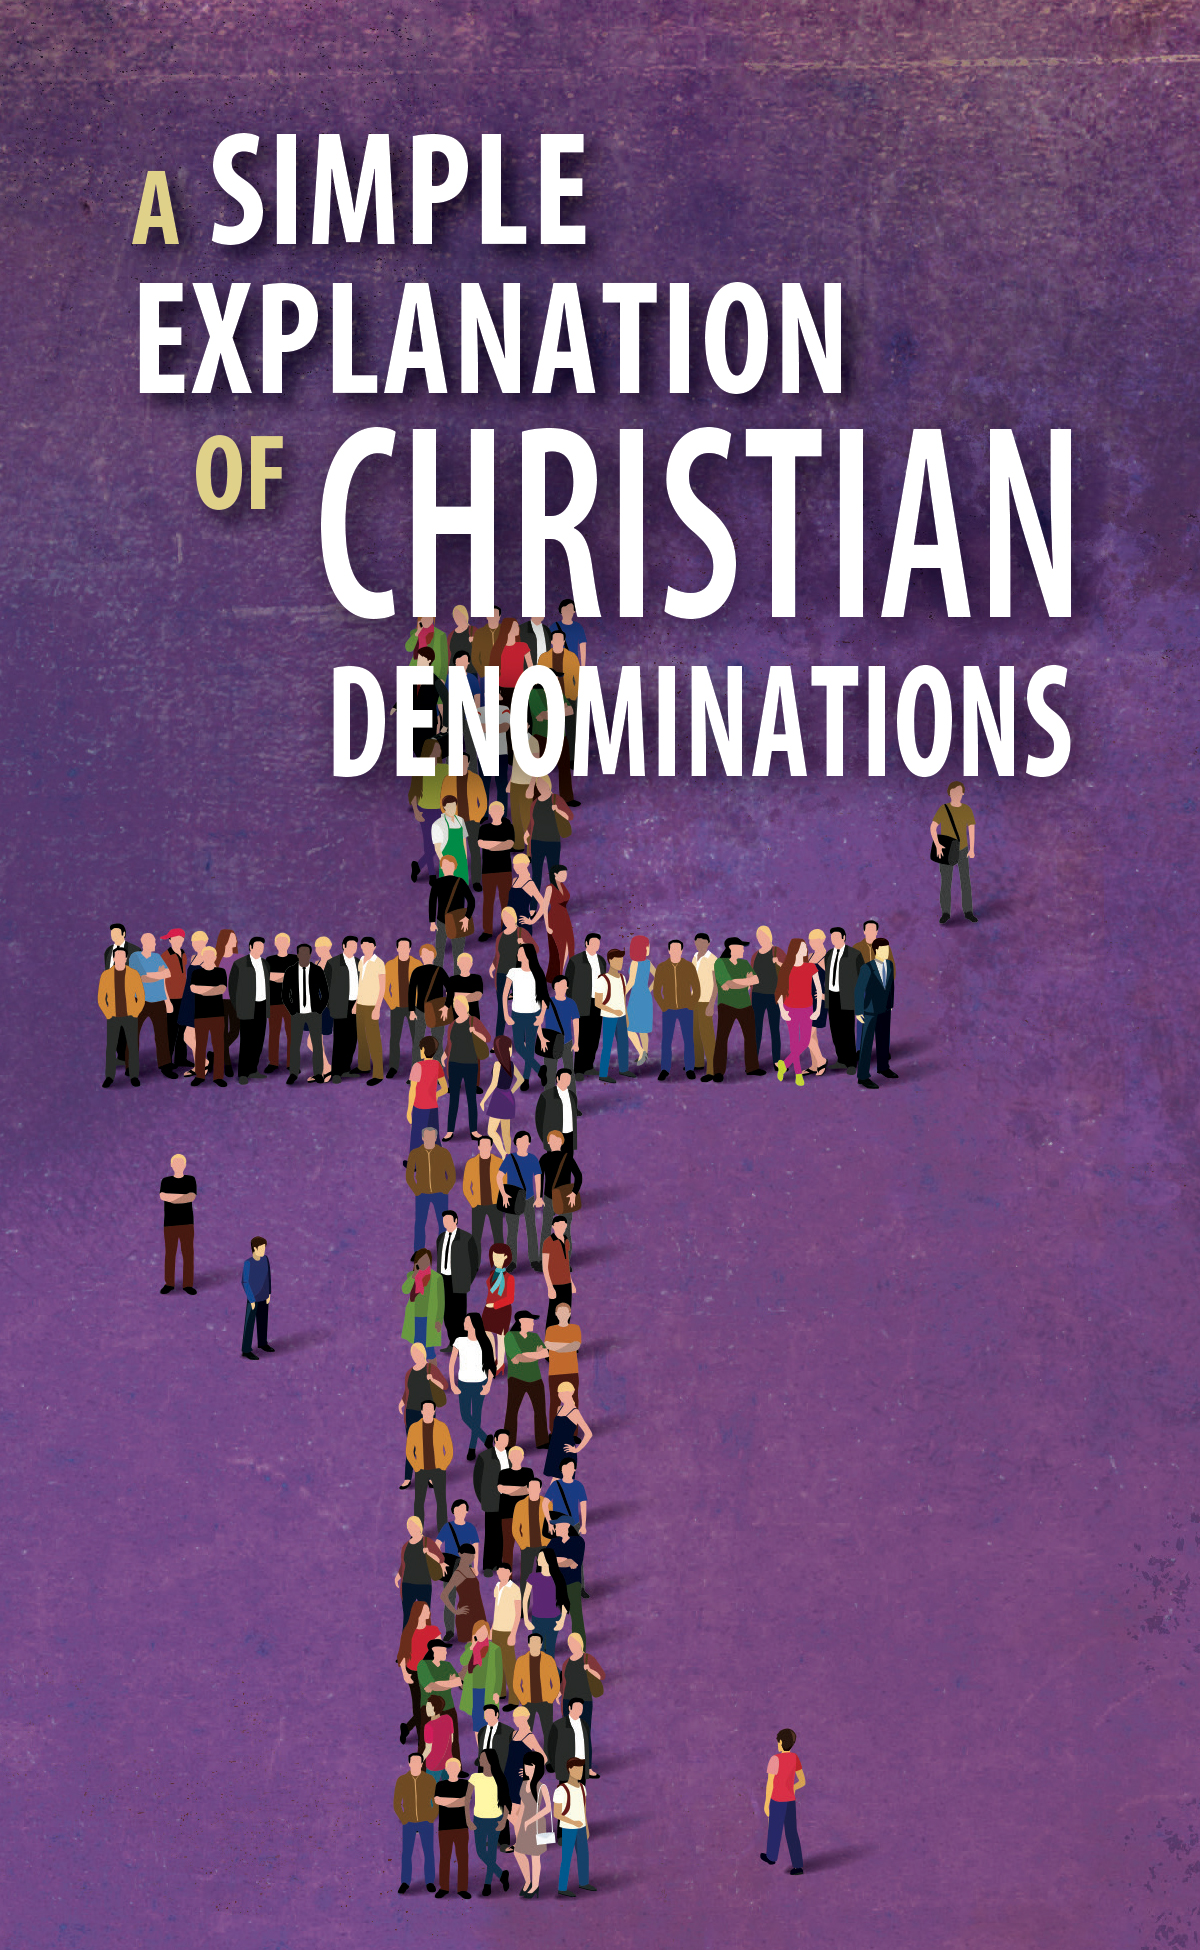 A Simple Explanation of Christian Denominations